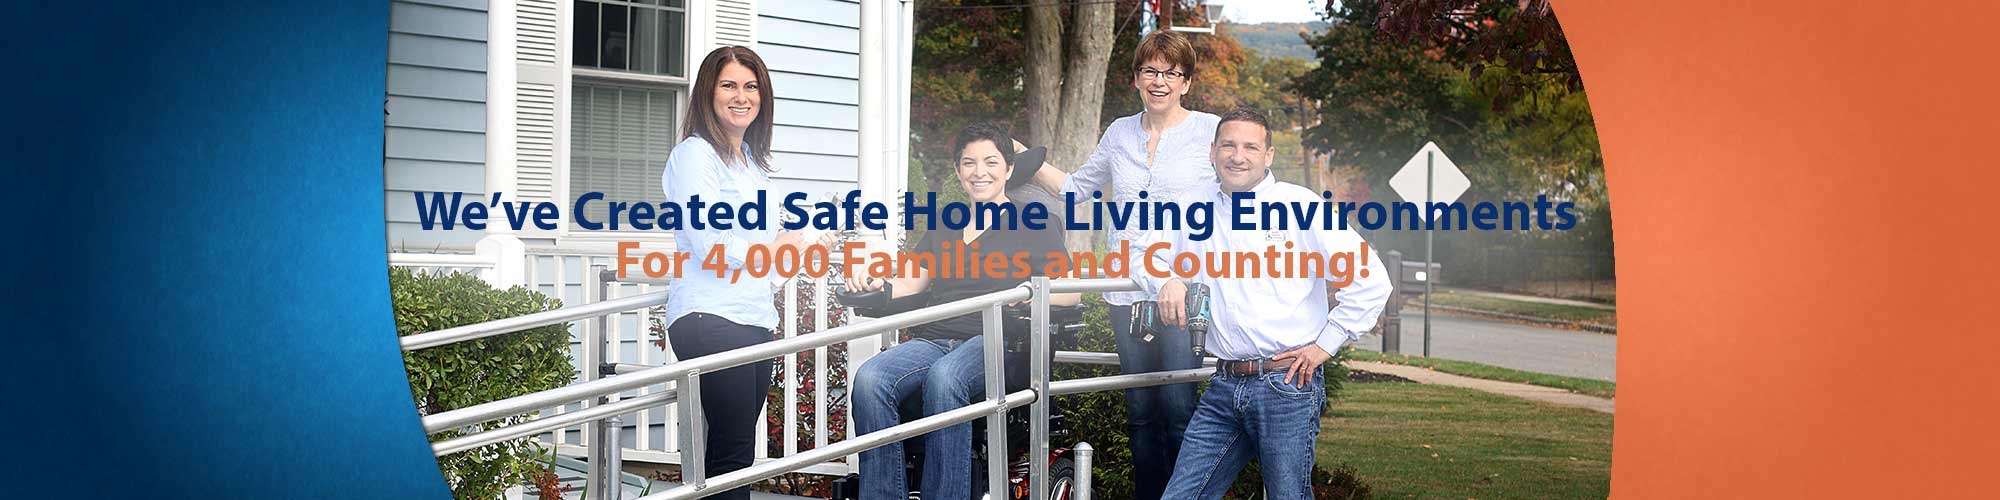 Safe Home Living with Back Home Safely